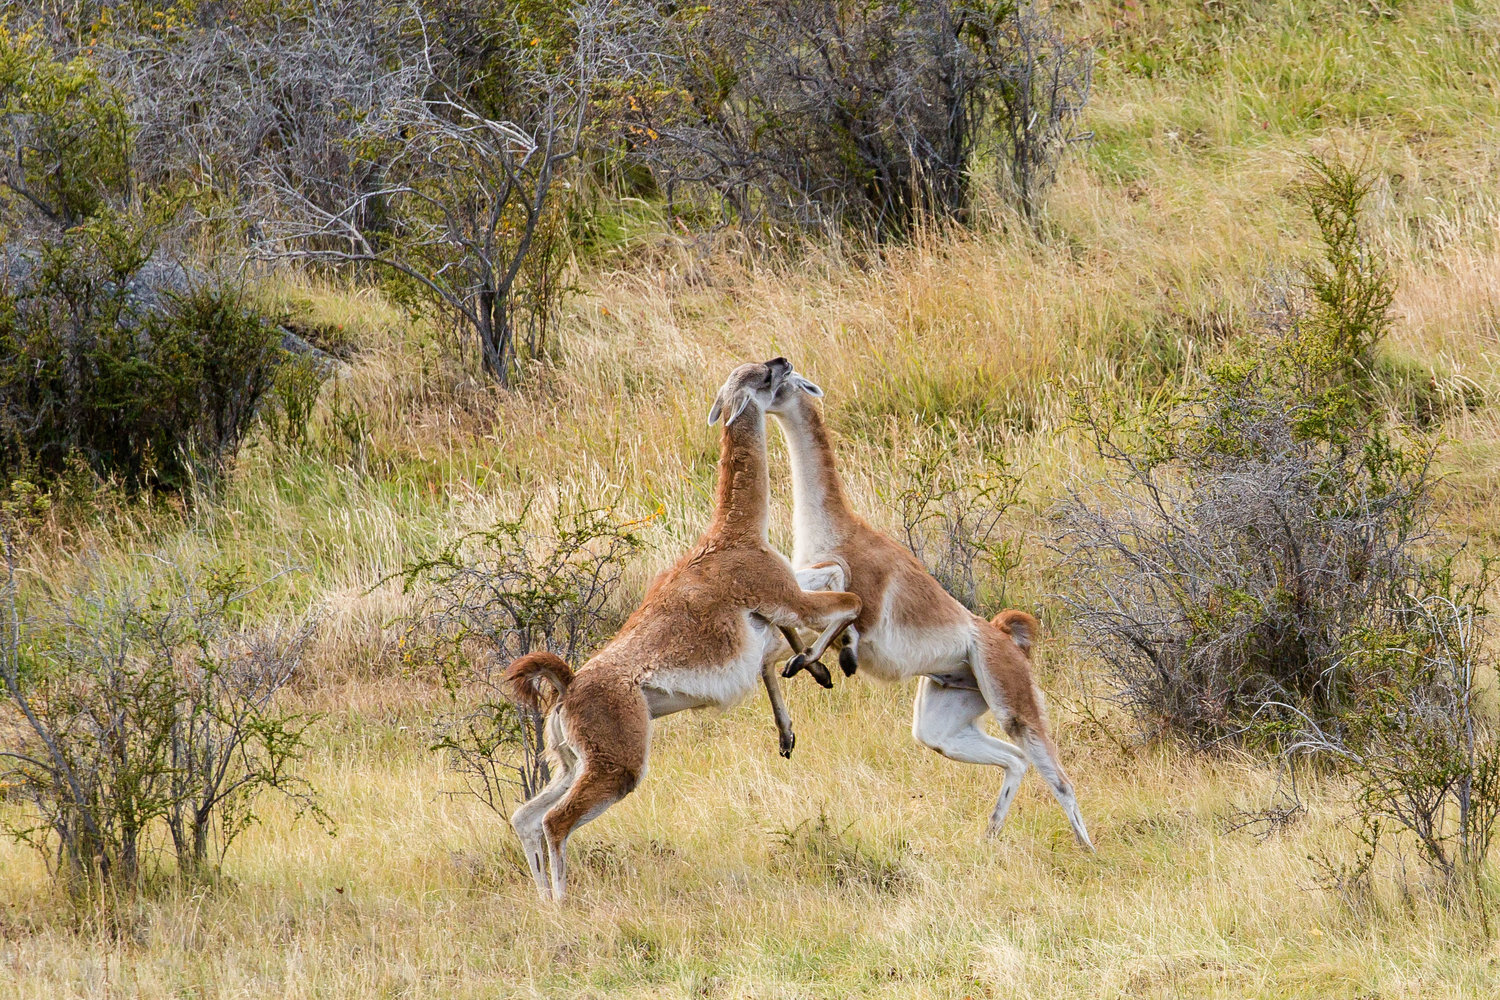 - Two male guanacos sparring for dominance